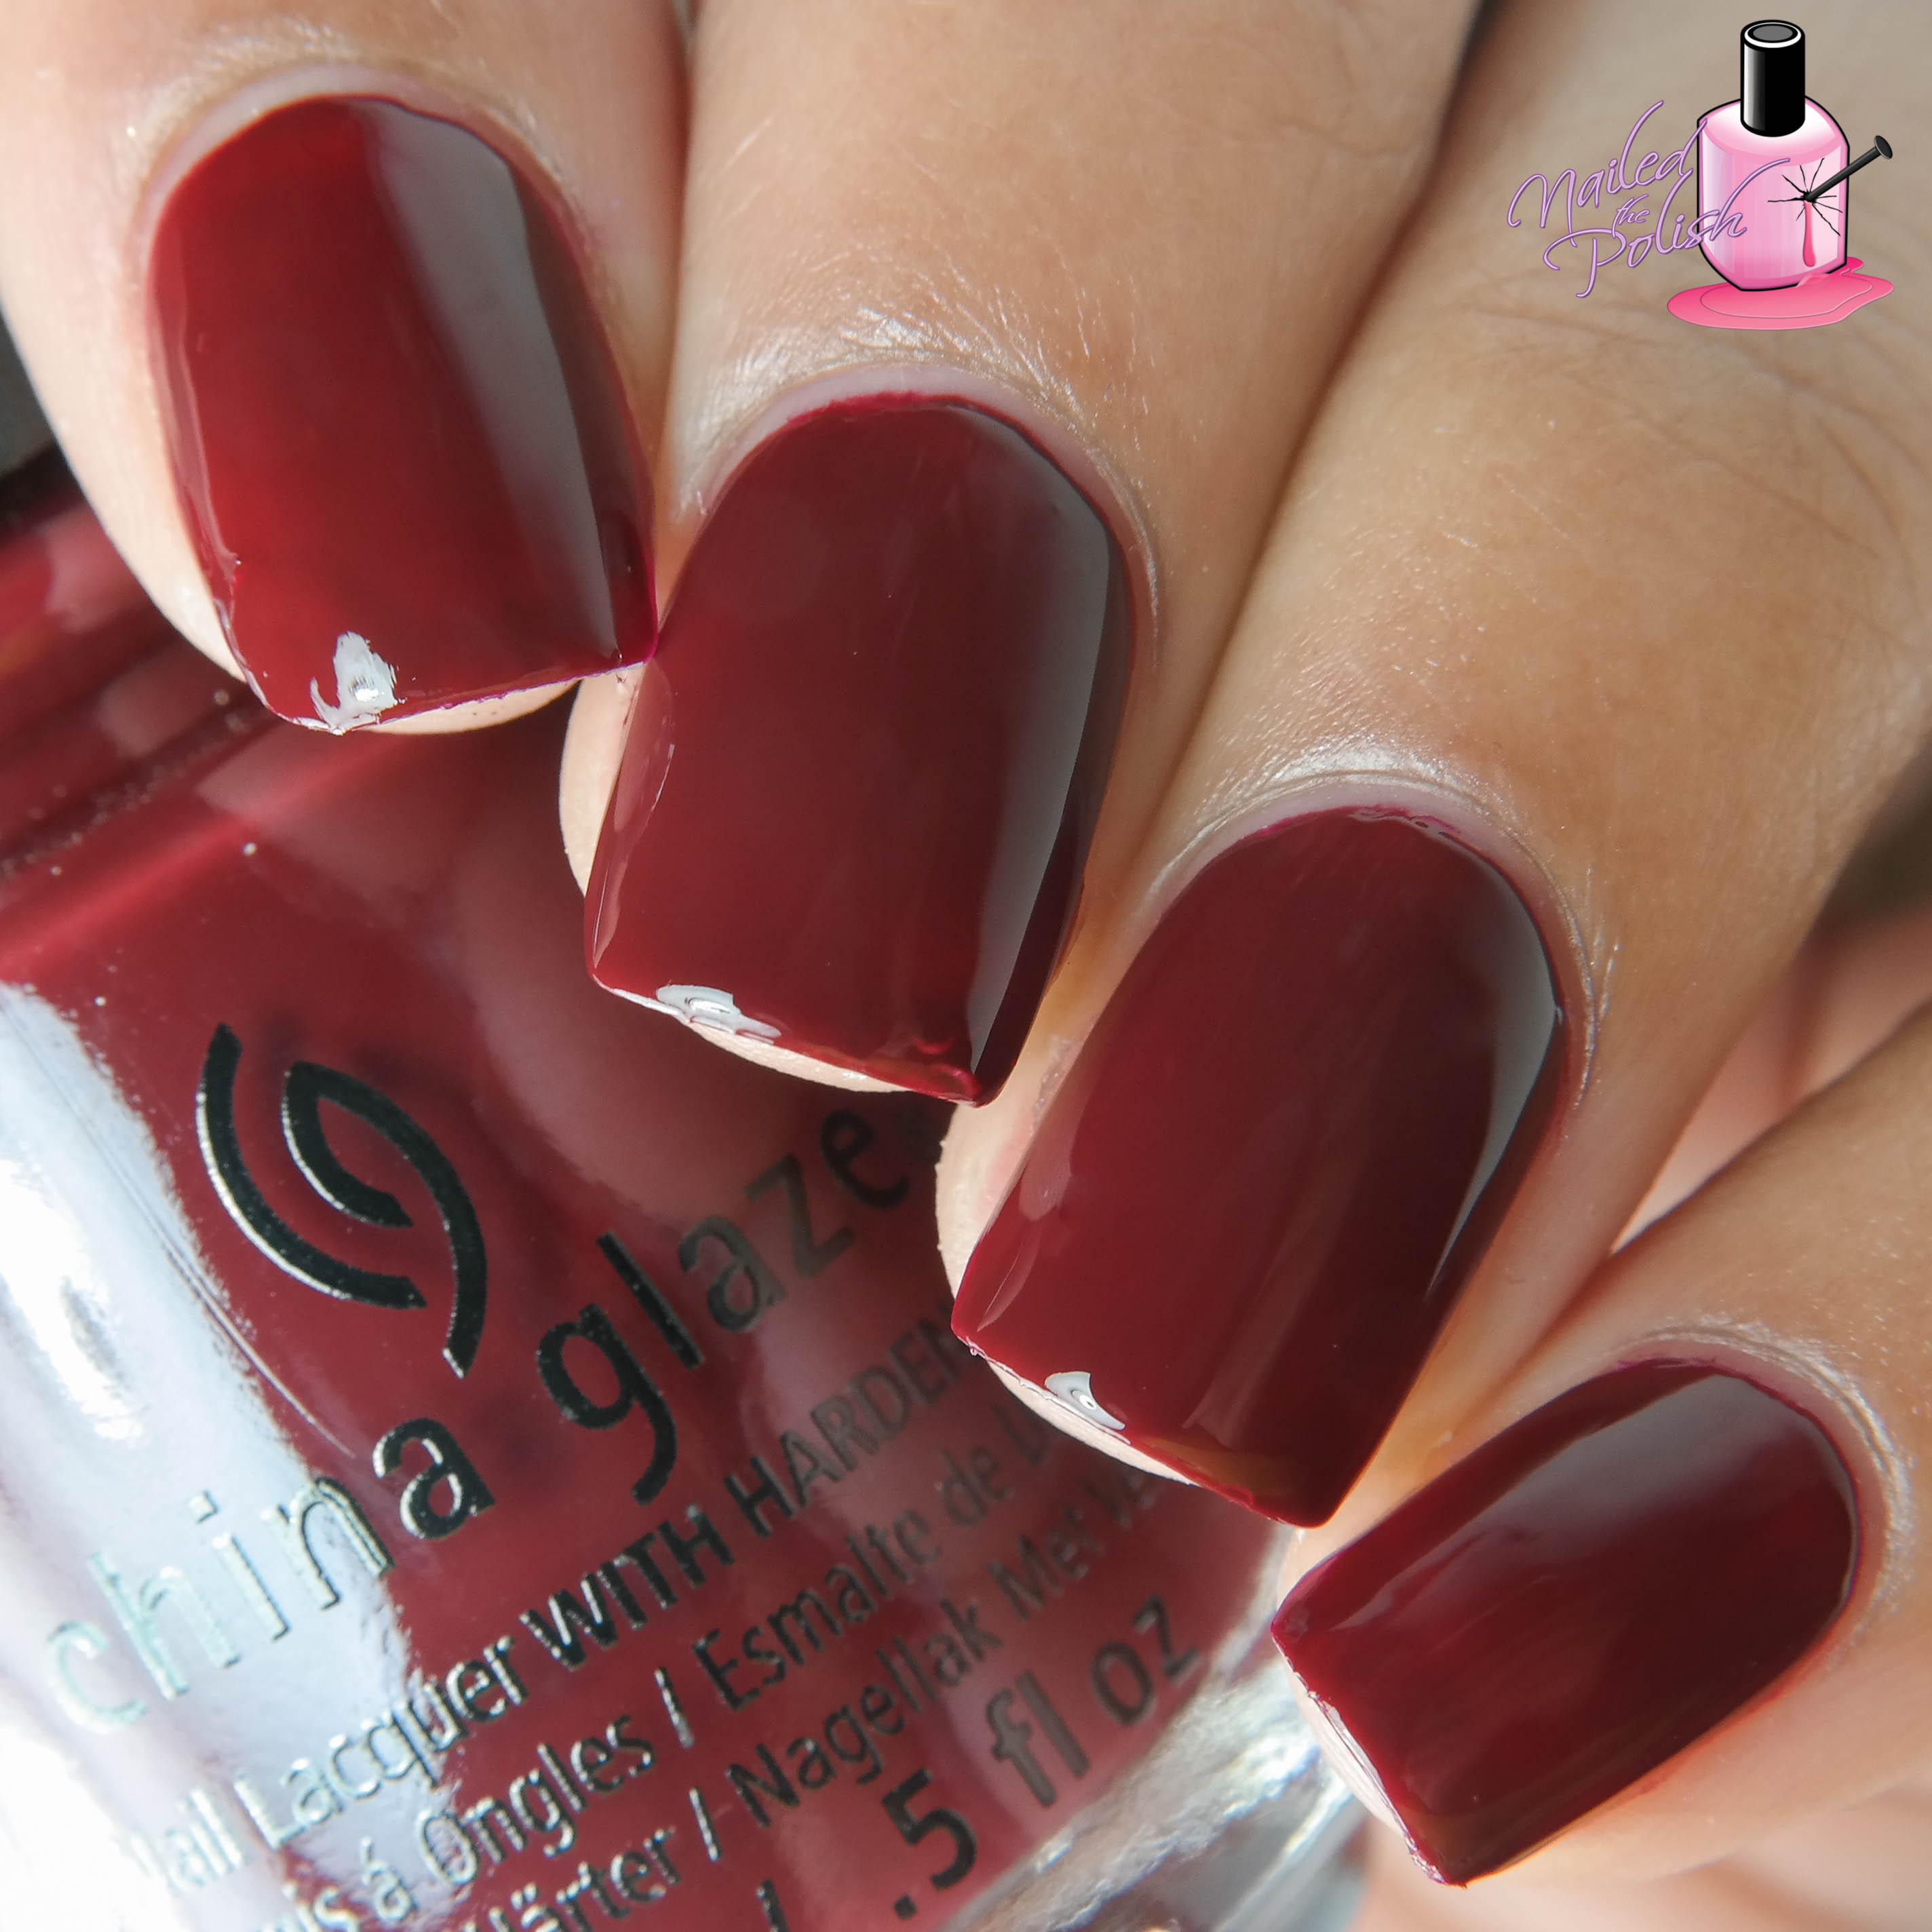 Wine Down For What Is A Vampy Burgundy Creme With Slight Brown Undertones Shown Here Two Coats Plus Top Coat Formula Really Nice